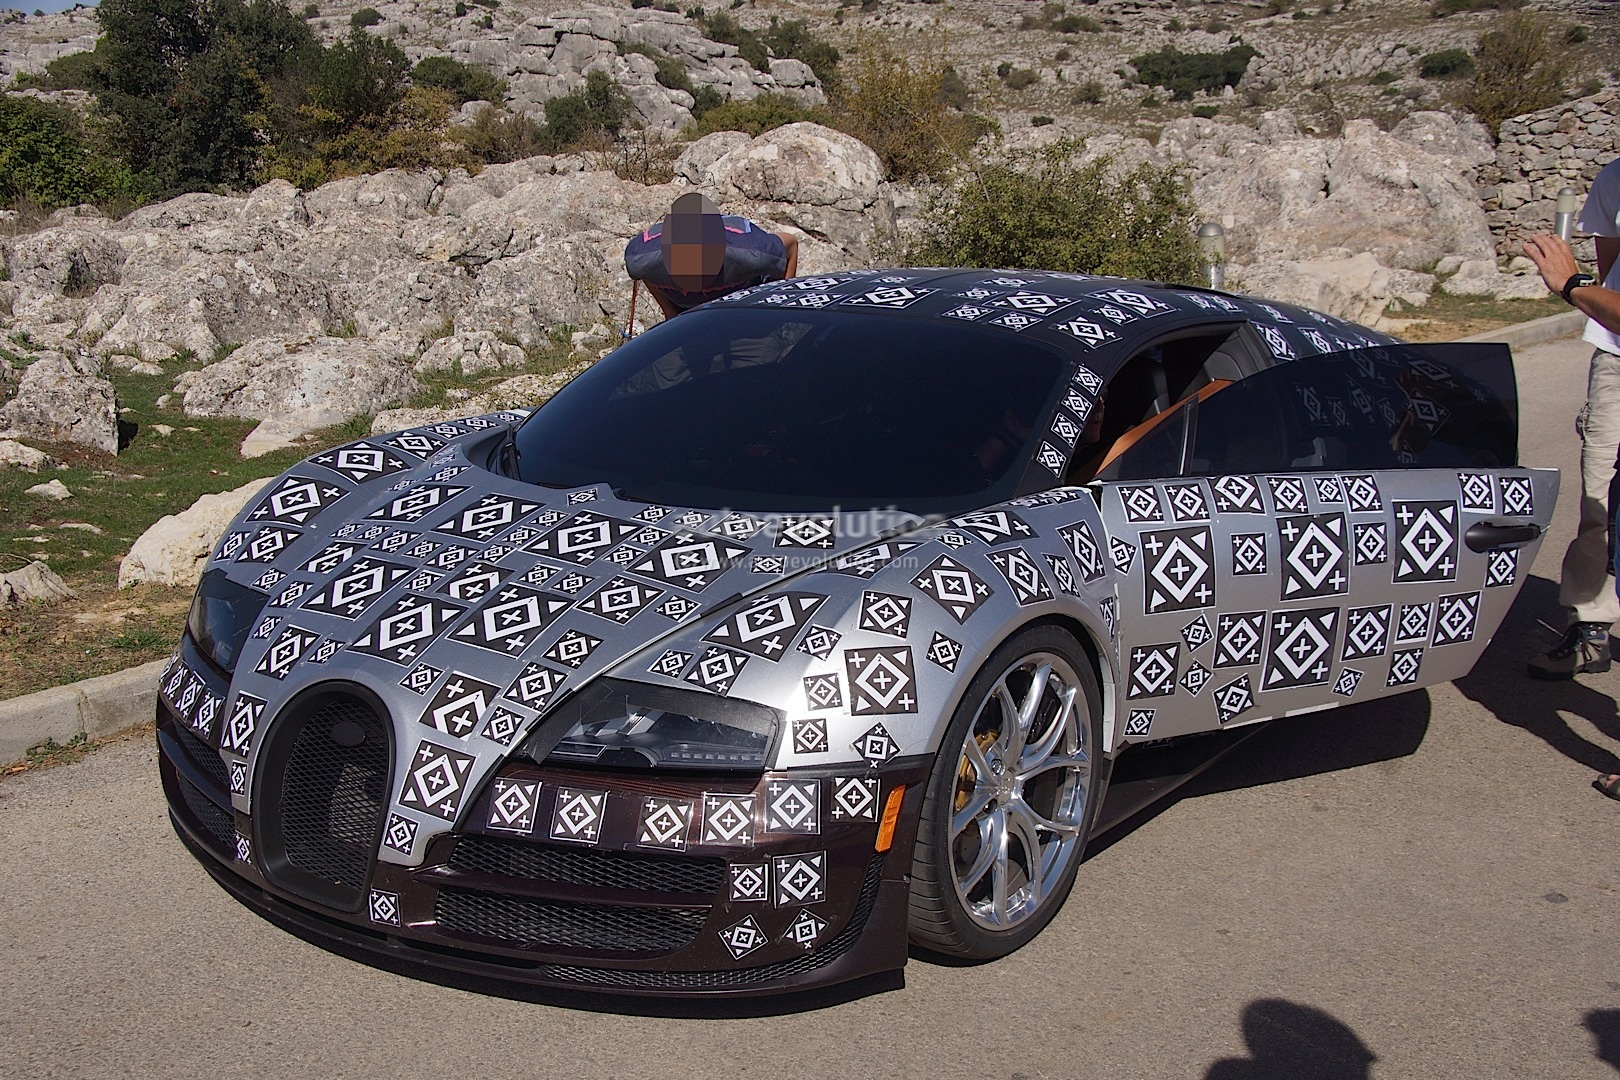 Bugatti Engine Manual User Guide That Easy To Read Veyron Diagram Successor Chiron Spied Testing Hybrid Power Rh Autoevolution Com